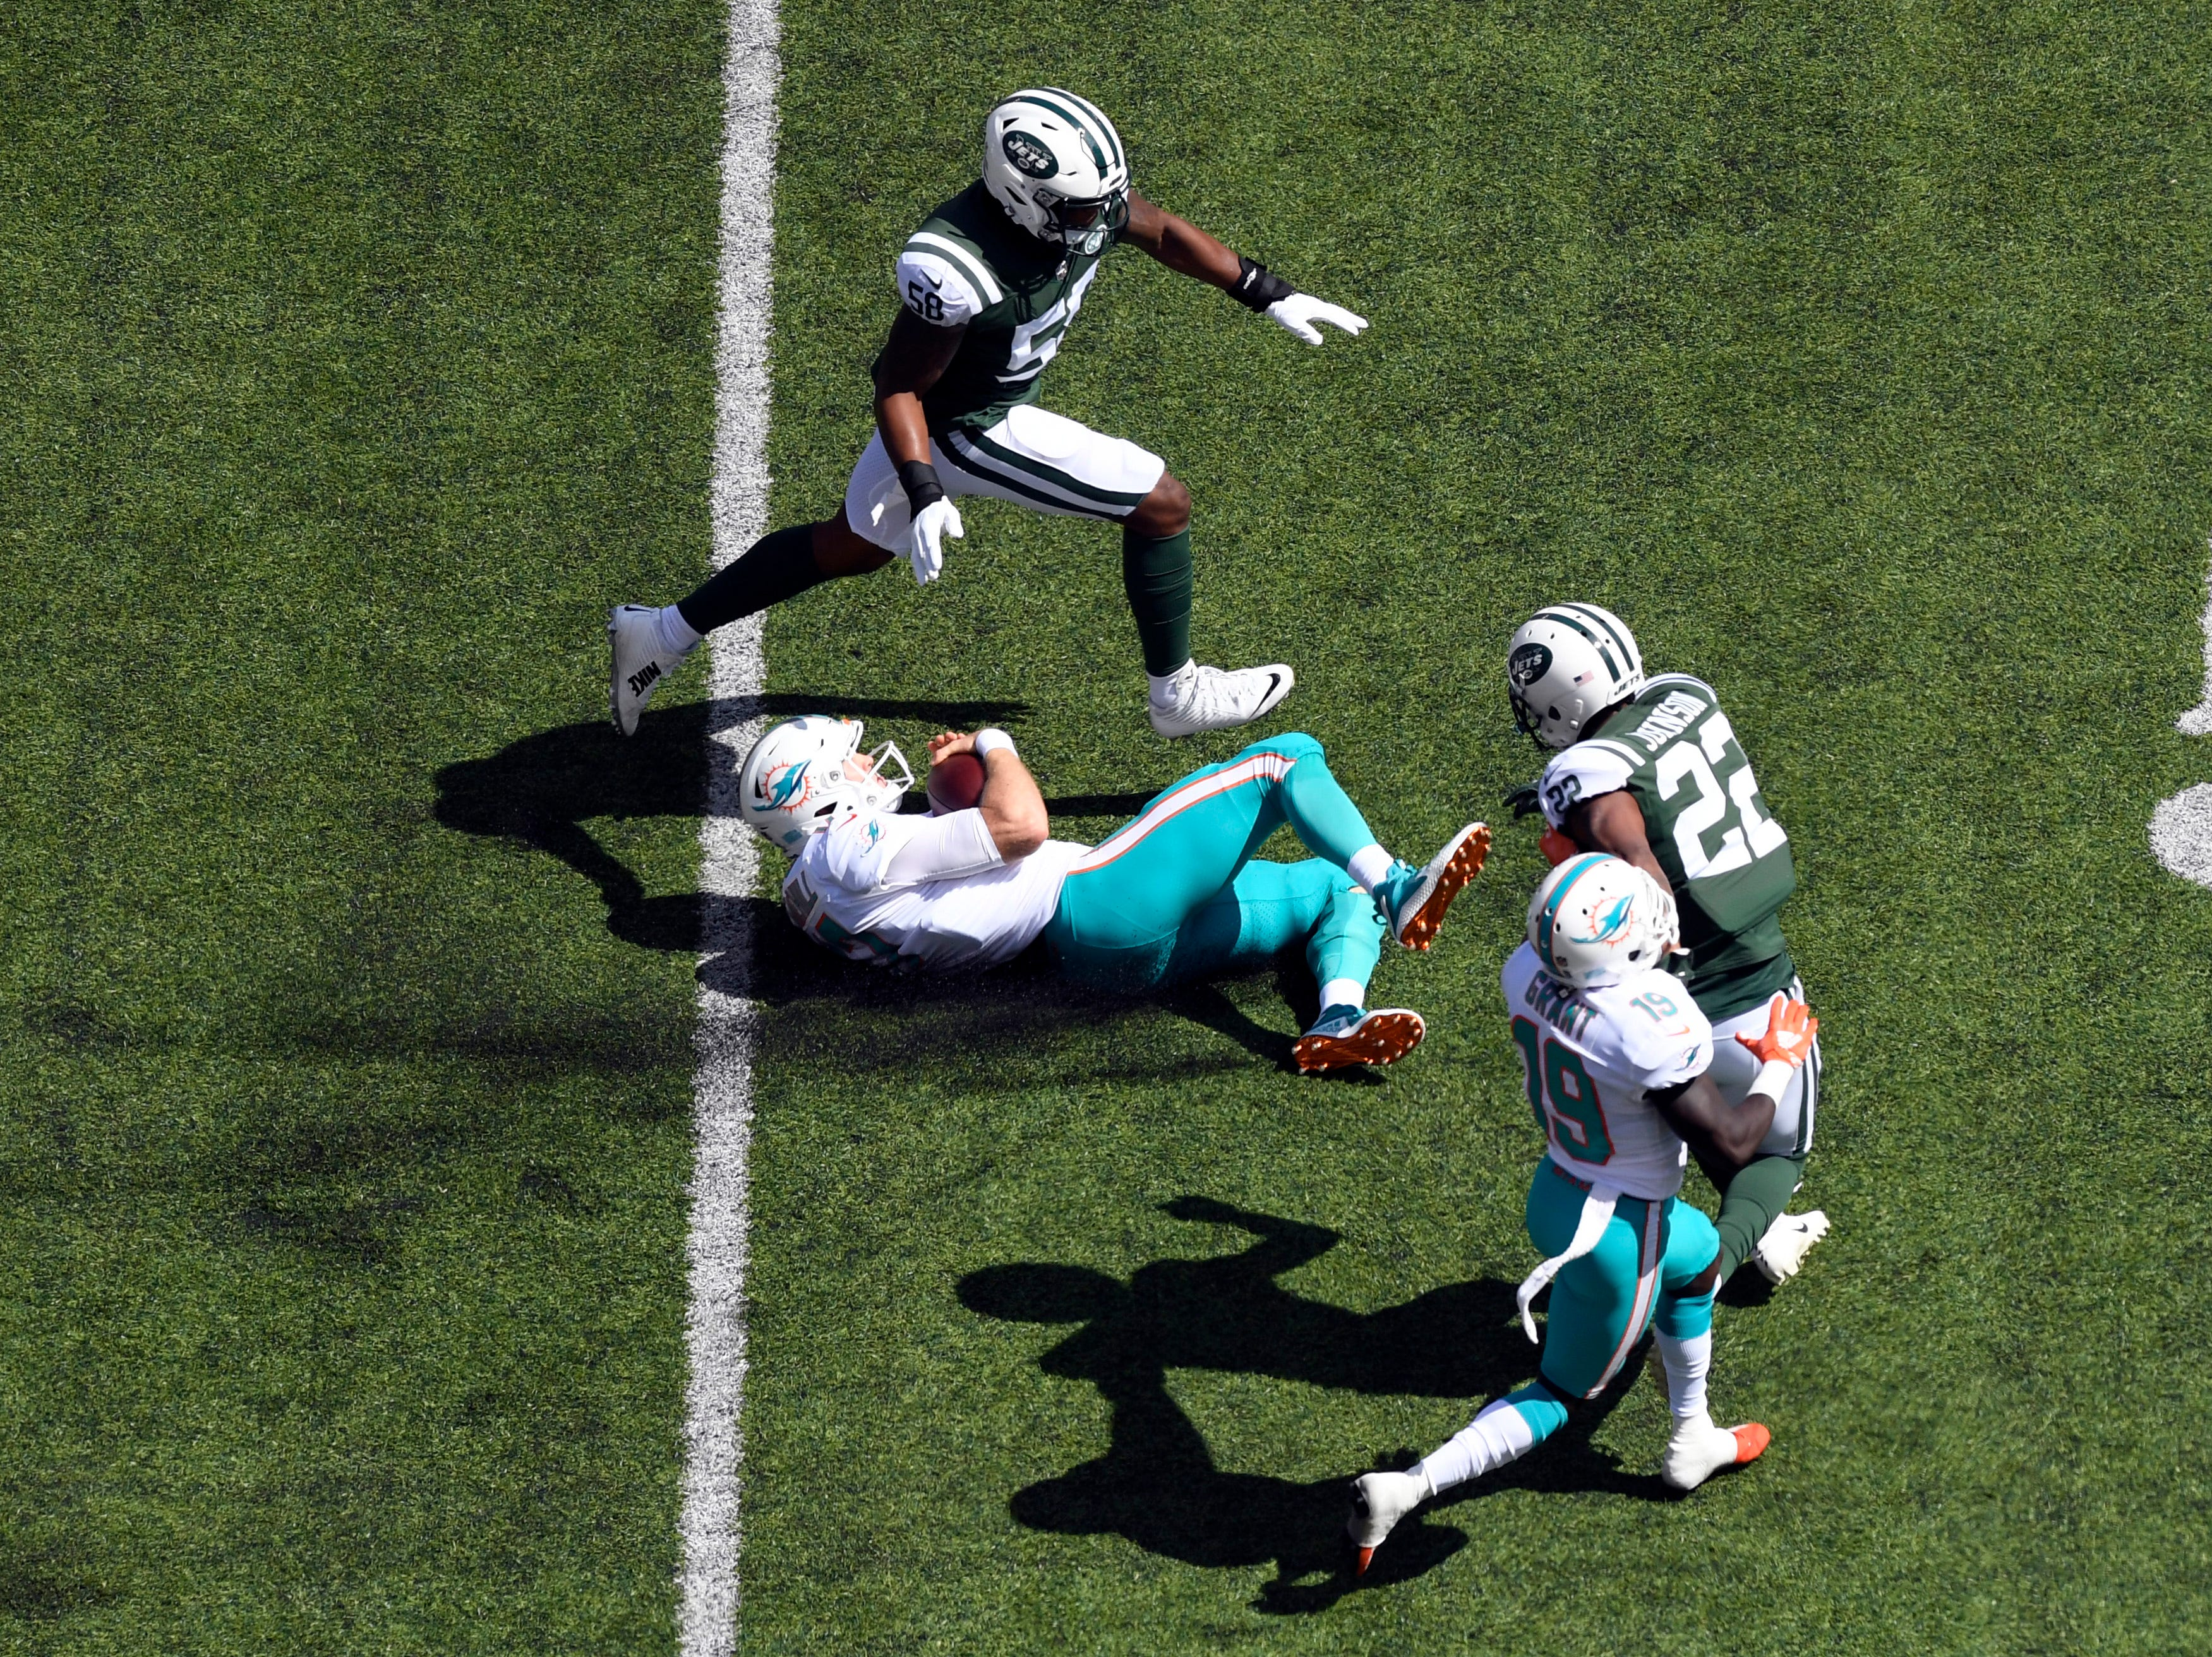 Miami Dolphins quarterback Ryan Tannehill (17) slides for a first down against the New York Jets in Week 2 at MetLife Stadium in East Rutherford, NJ on Sunday, September 16, 2018.